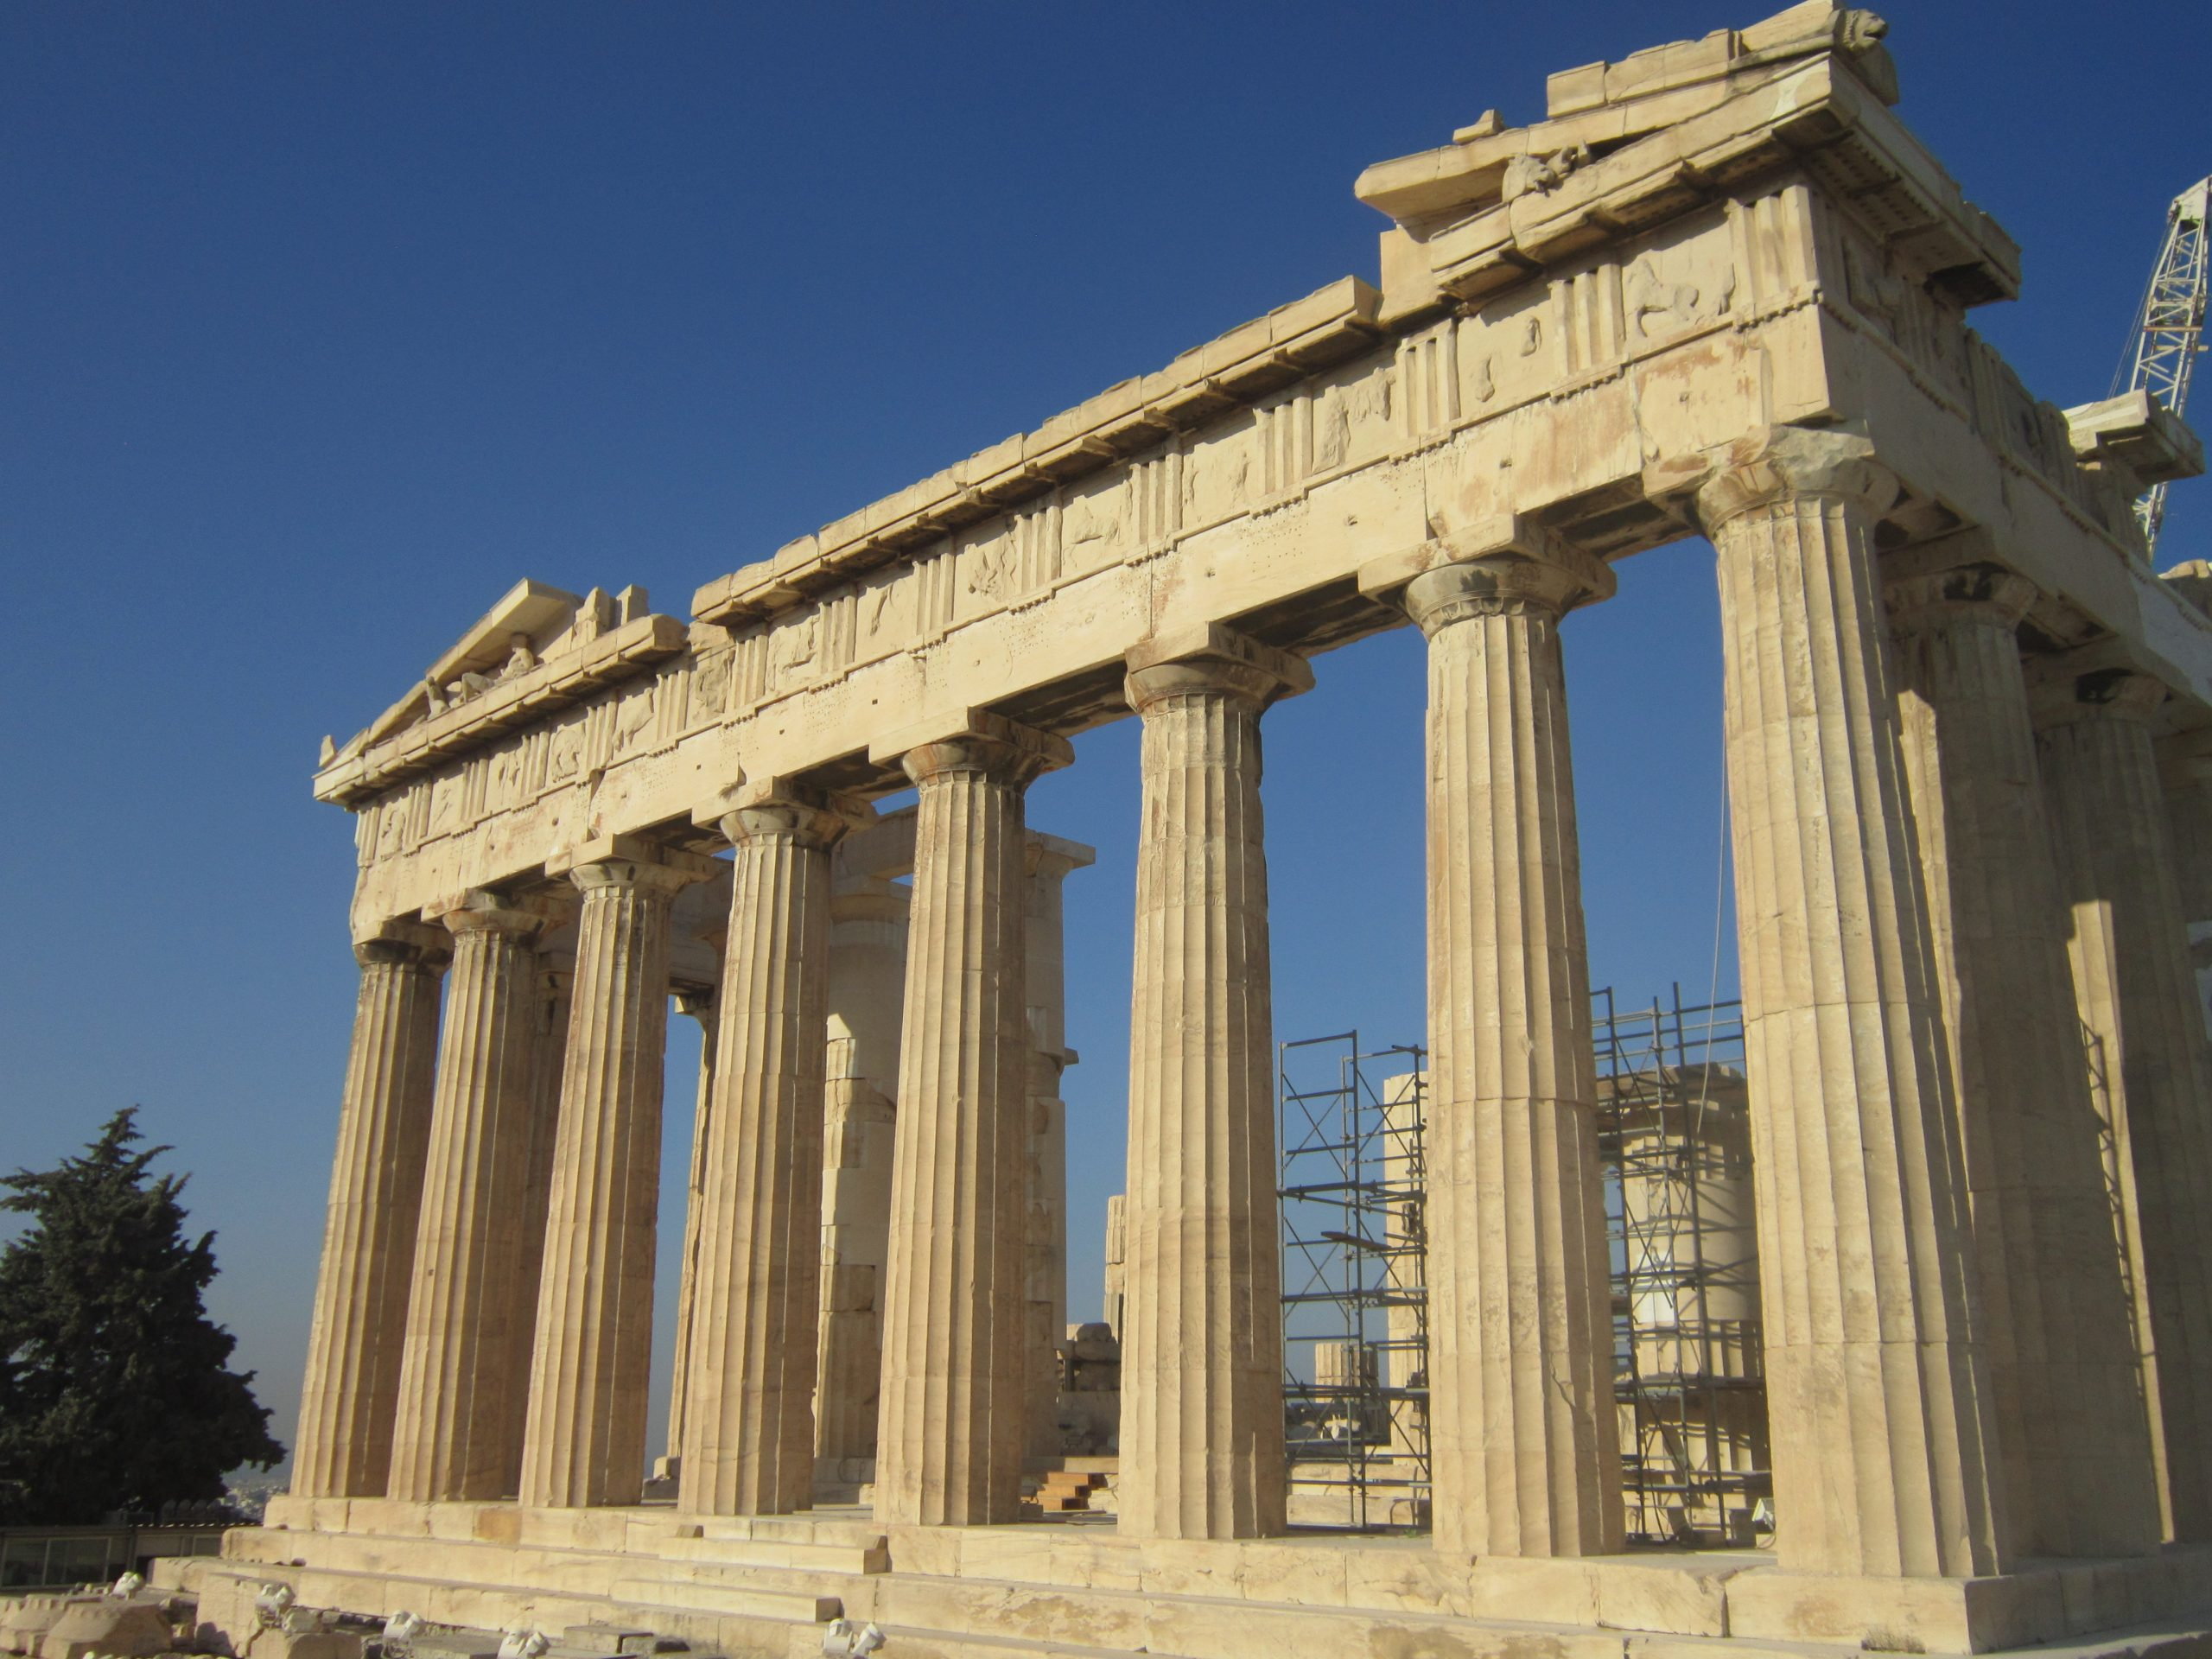 Part of the Parthenon in the Athens Acropolis.